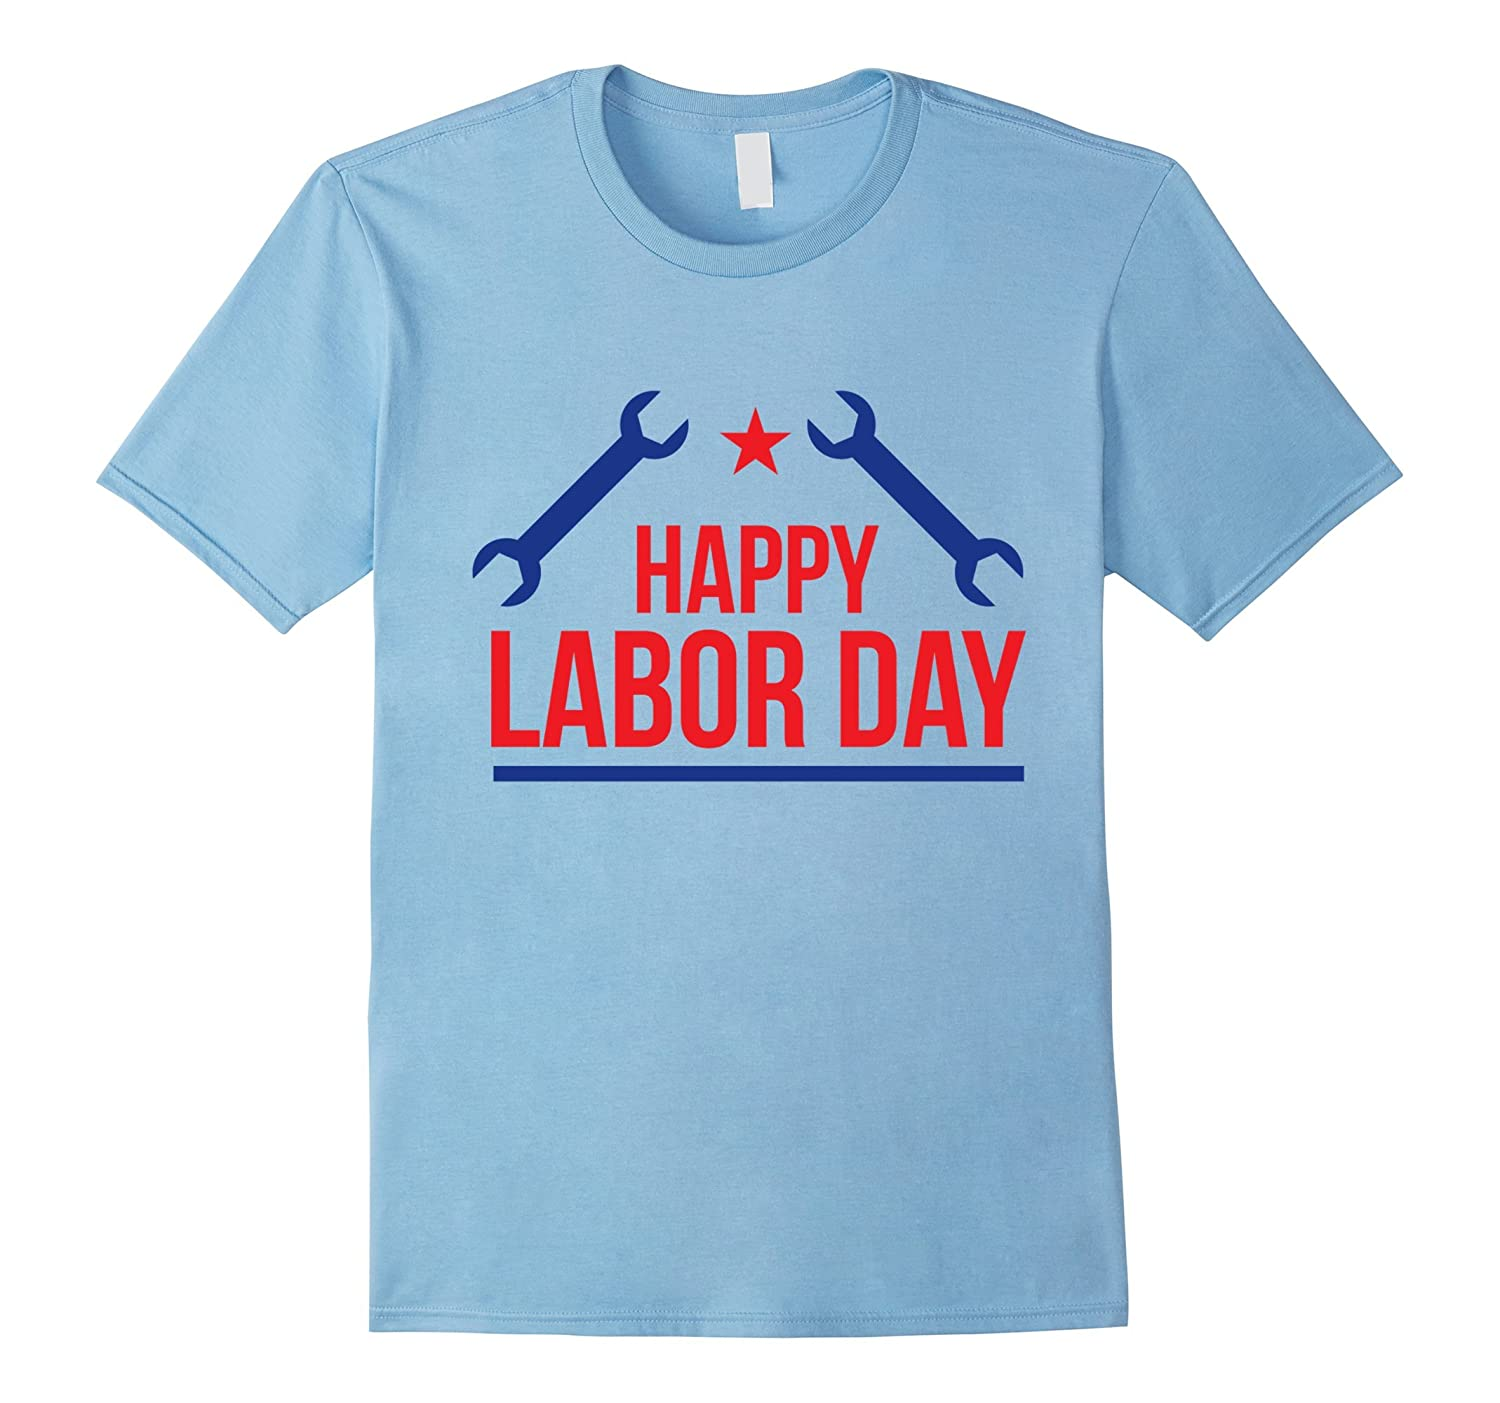 Happy Labor Day Tee Shirt For Workers-BN